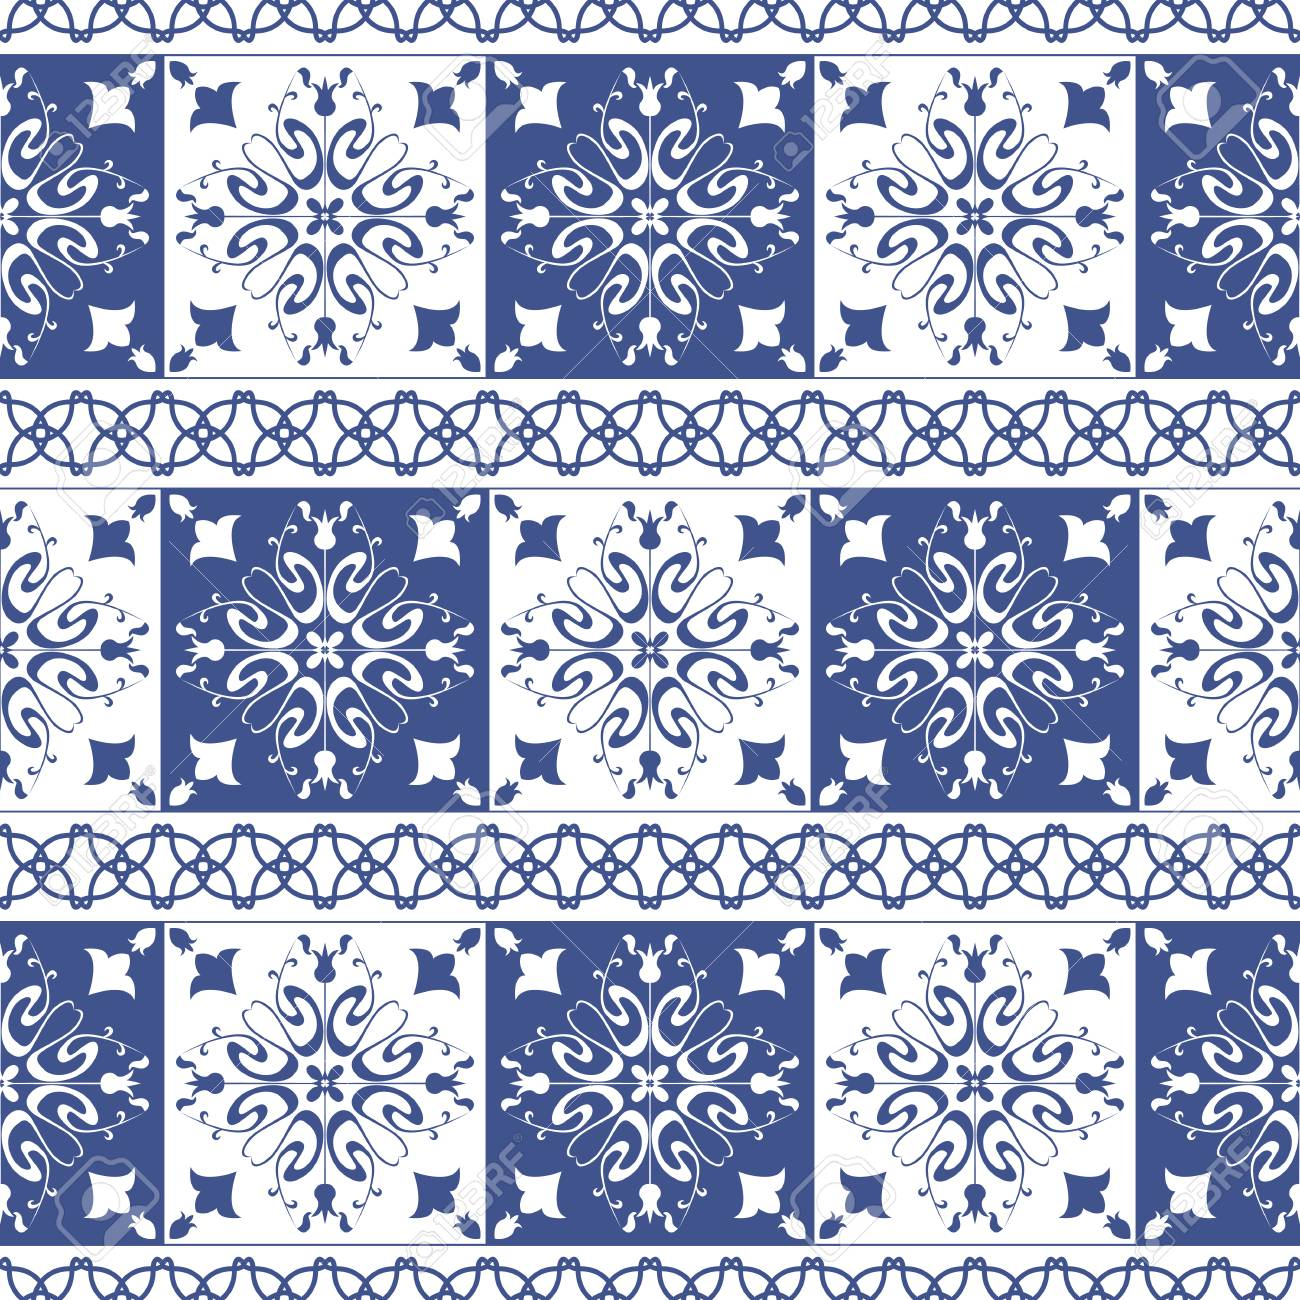 Vector   Vector Seamless Tiles Background In Portuguese Style. Blue And  White Mosaic Border. Tiles For Ceramic In Dutch, Portuguese, Spanish,  Italian Style.